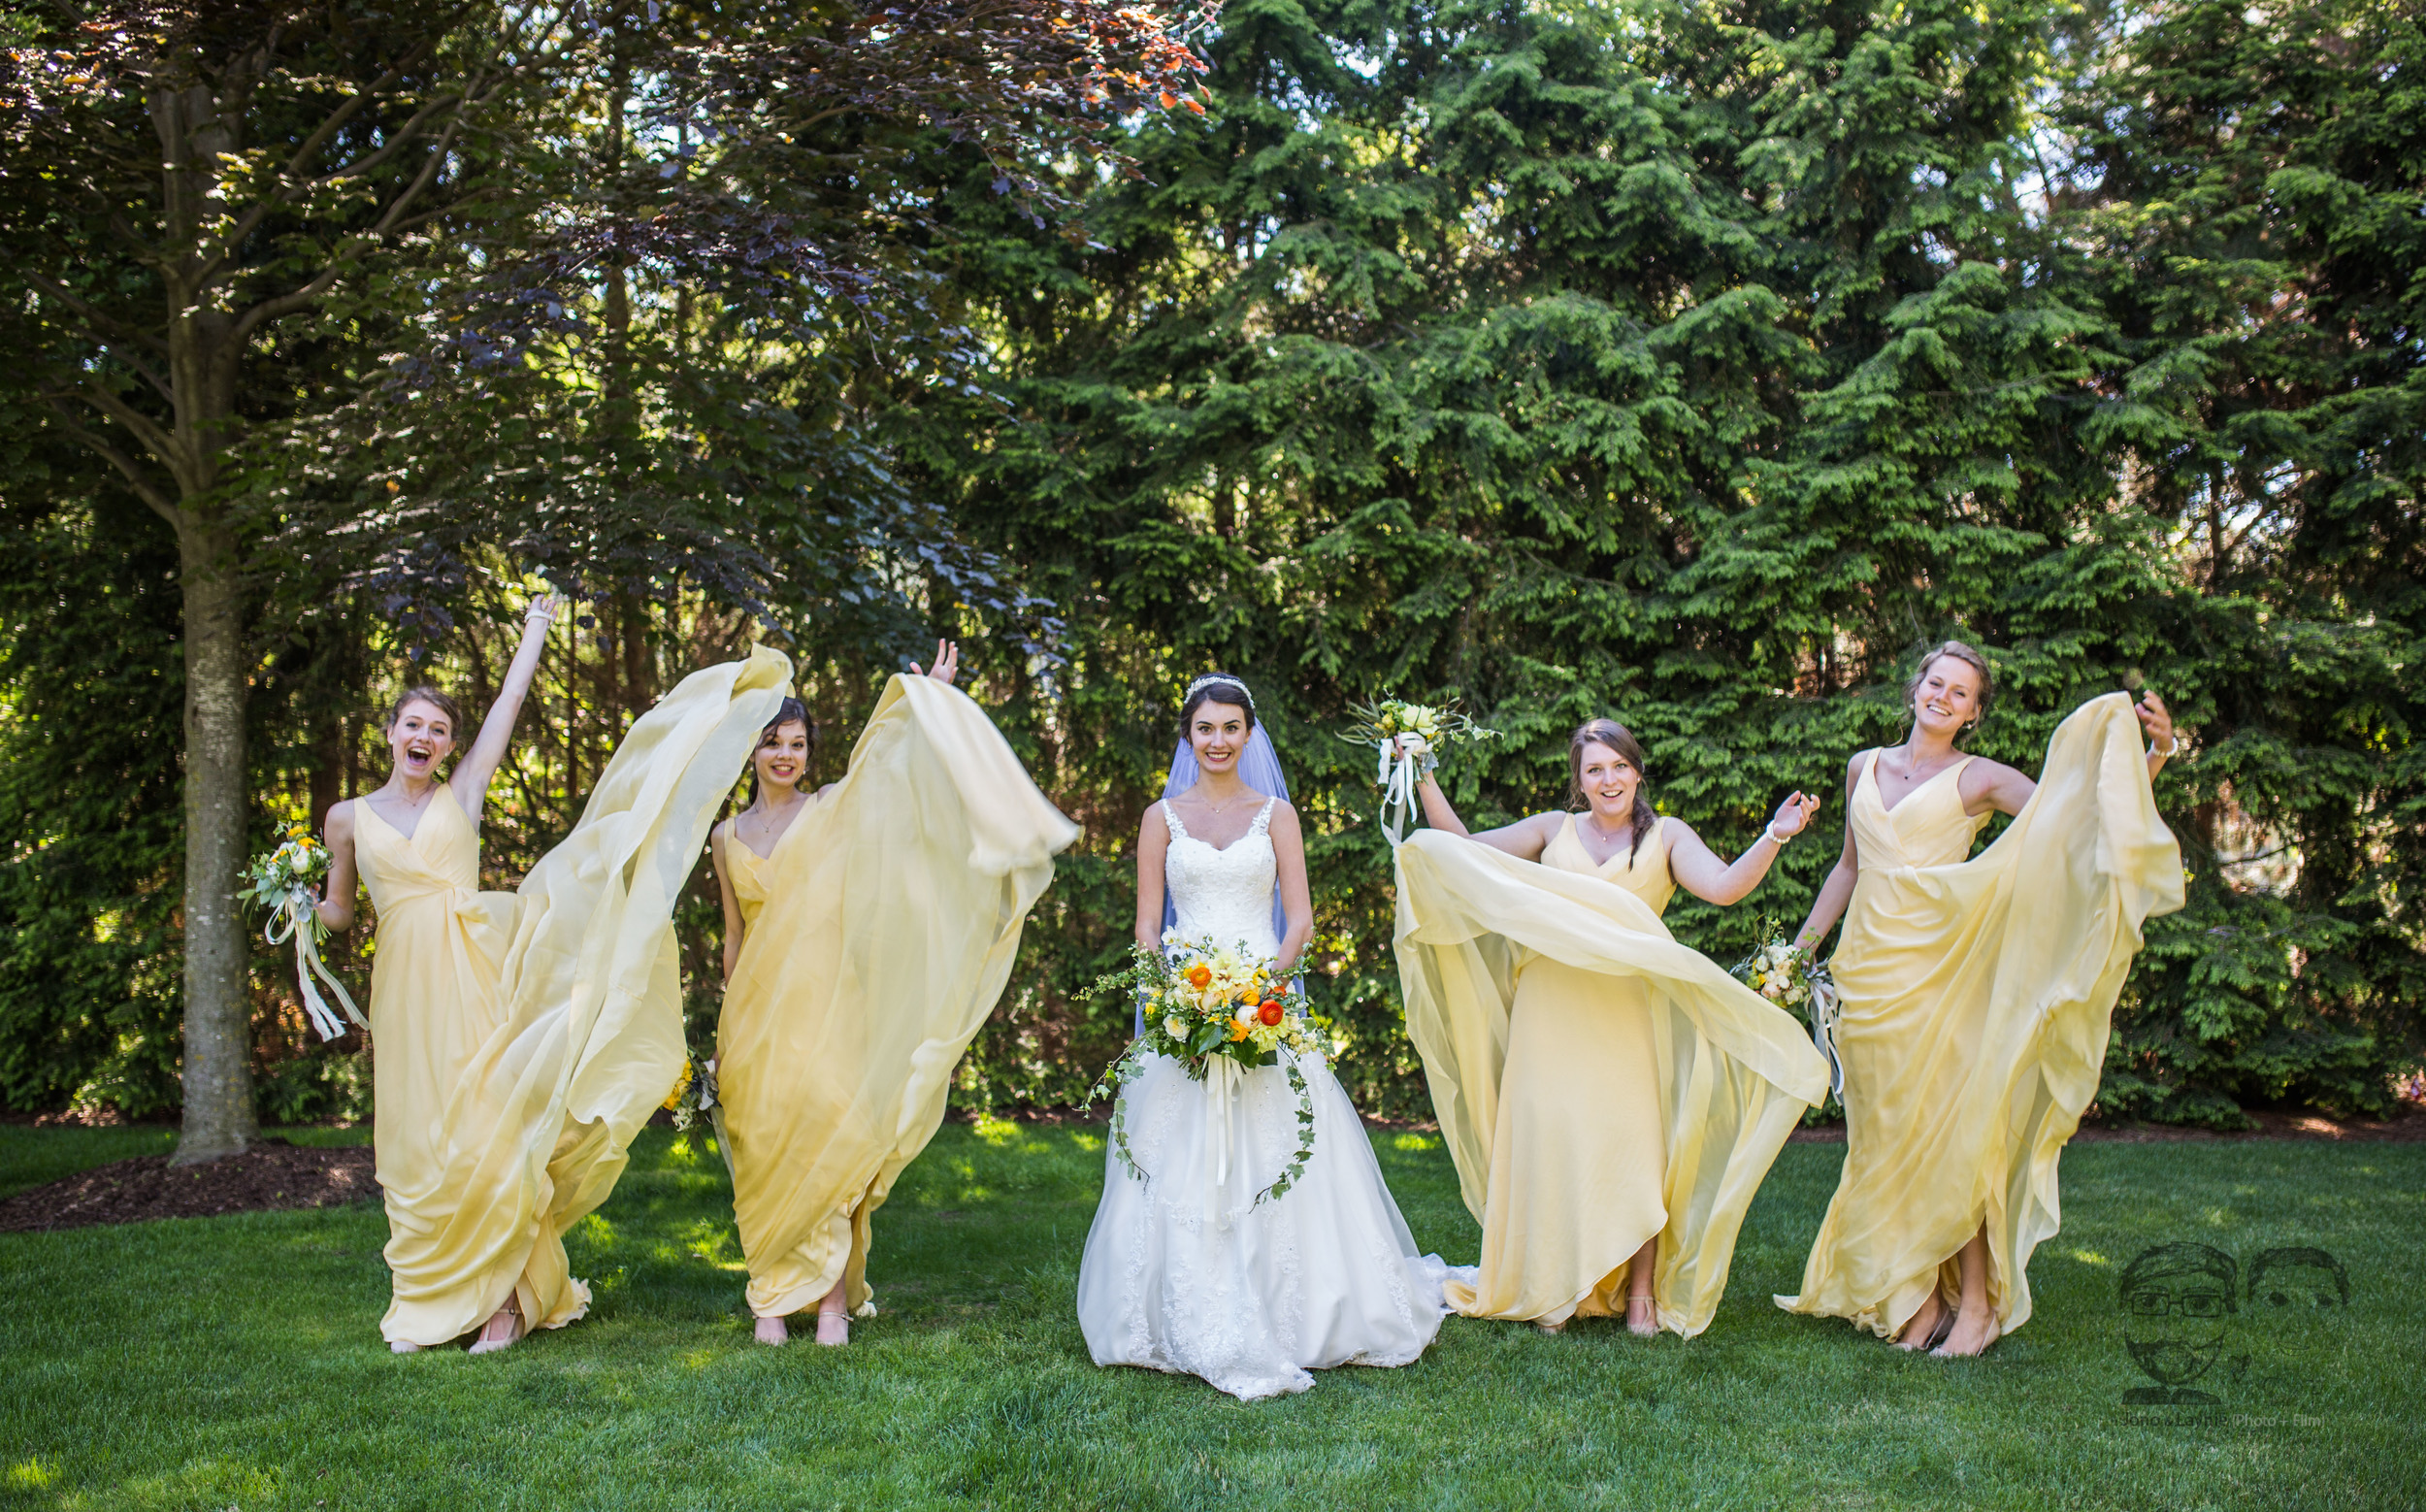 059Toronto Wedding Photographers and Videographers-Jono & Laynie Co.jpg